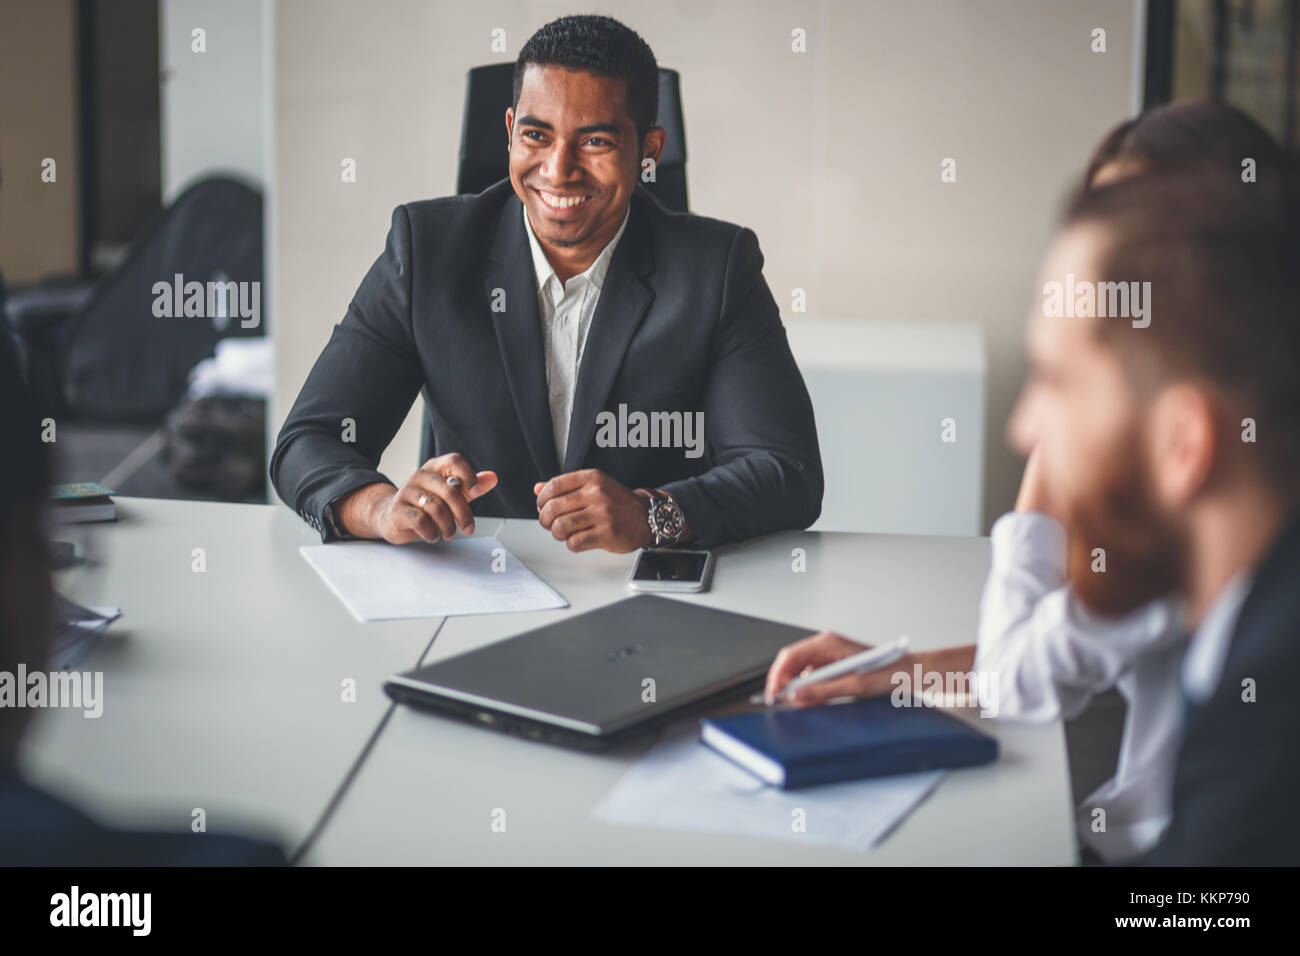 team leader and business owner leading informal in-house business meeting - Stock Image